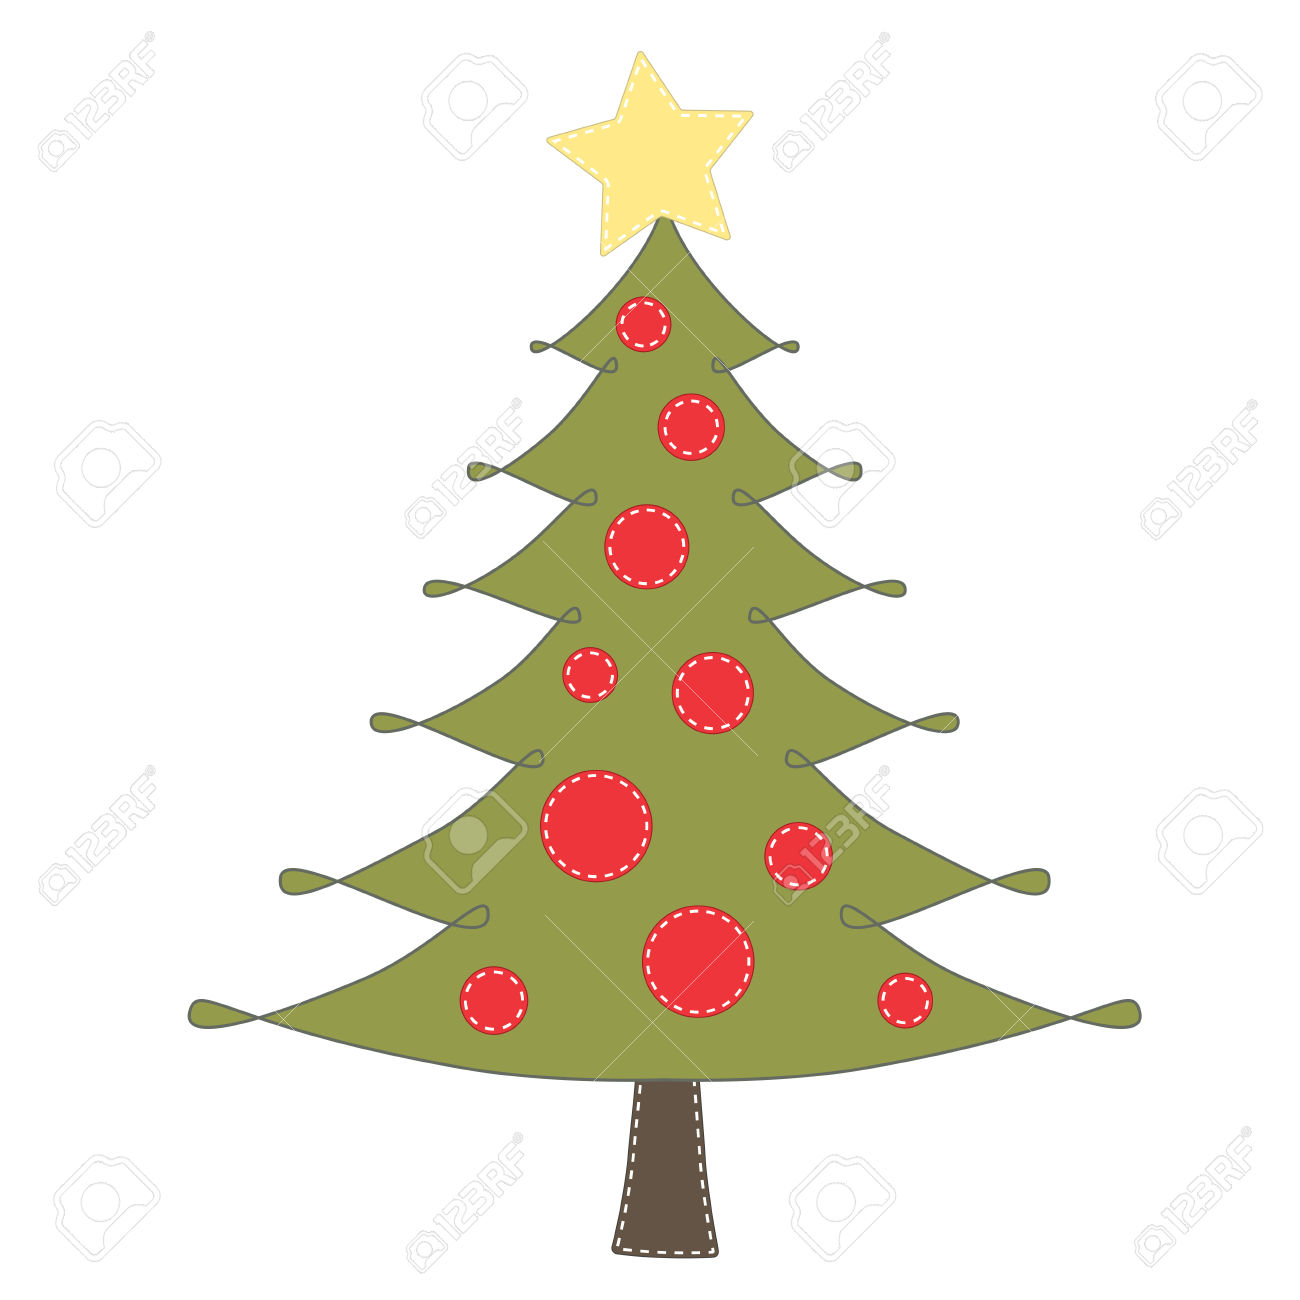 1300x1300 Christmas Tree Clip Art On Transparent Background For Scrapbooking